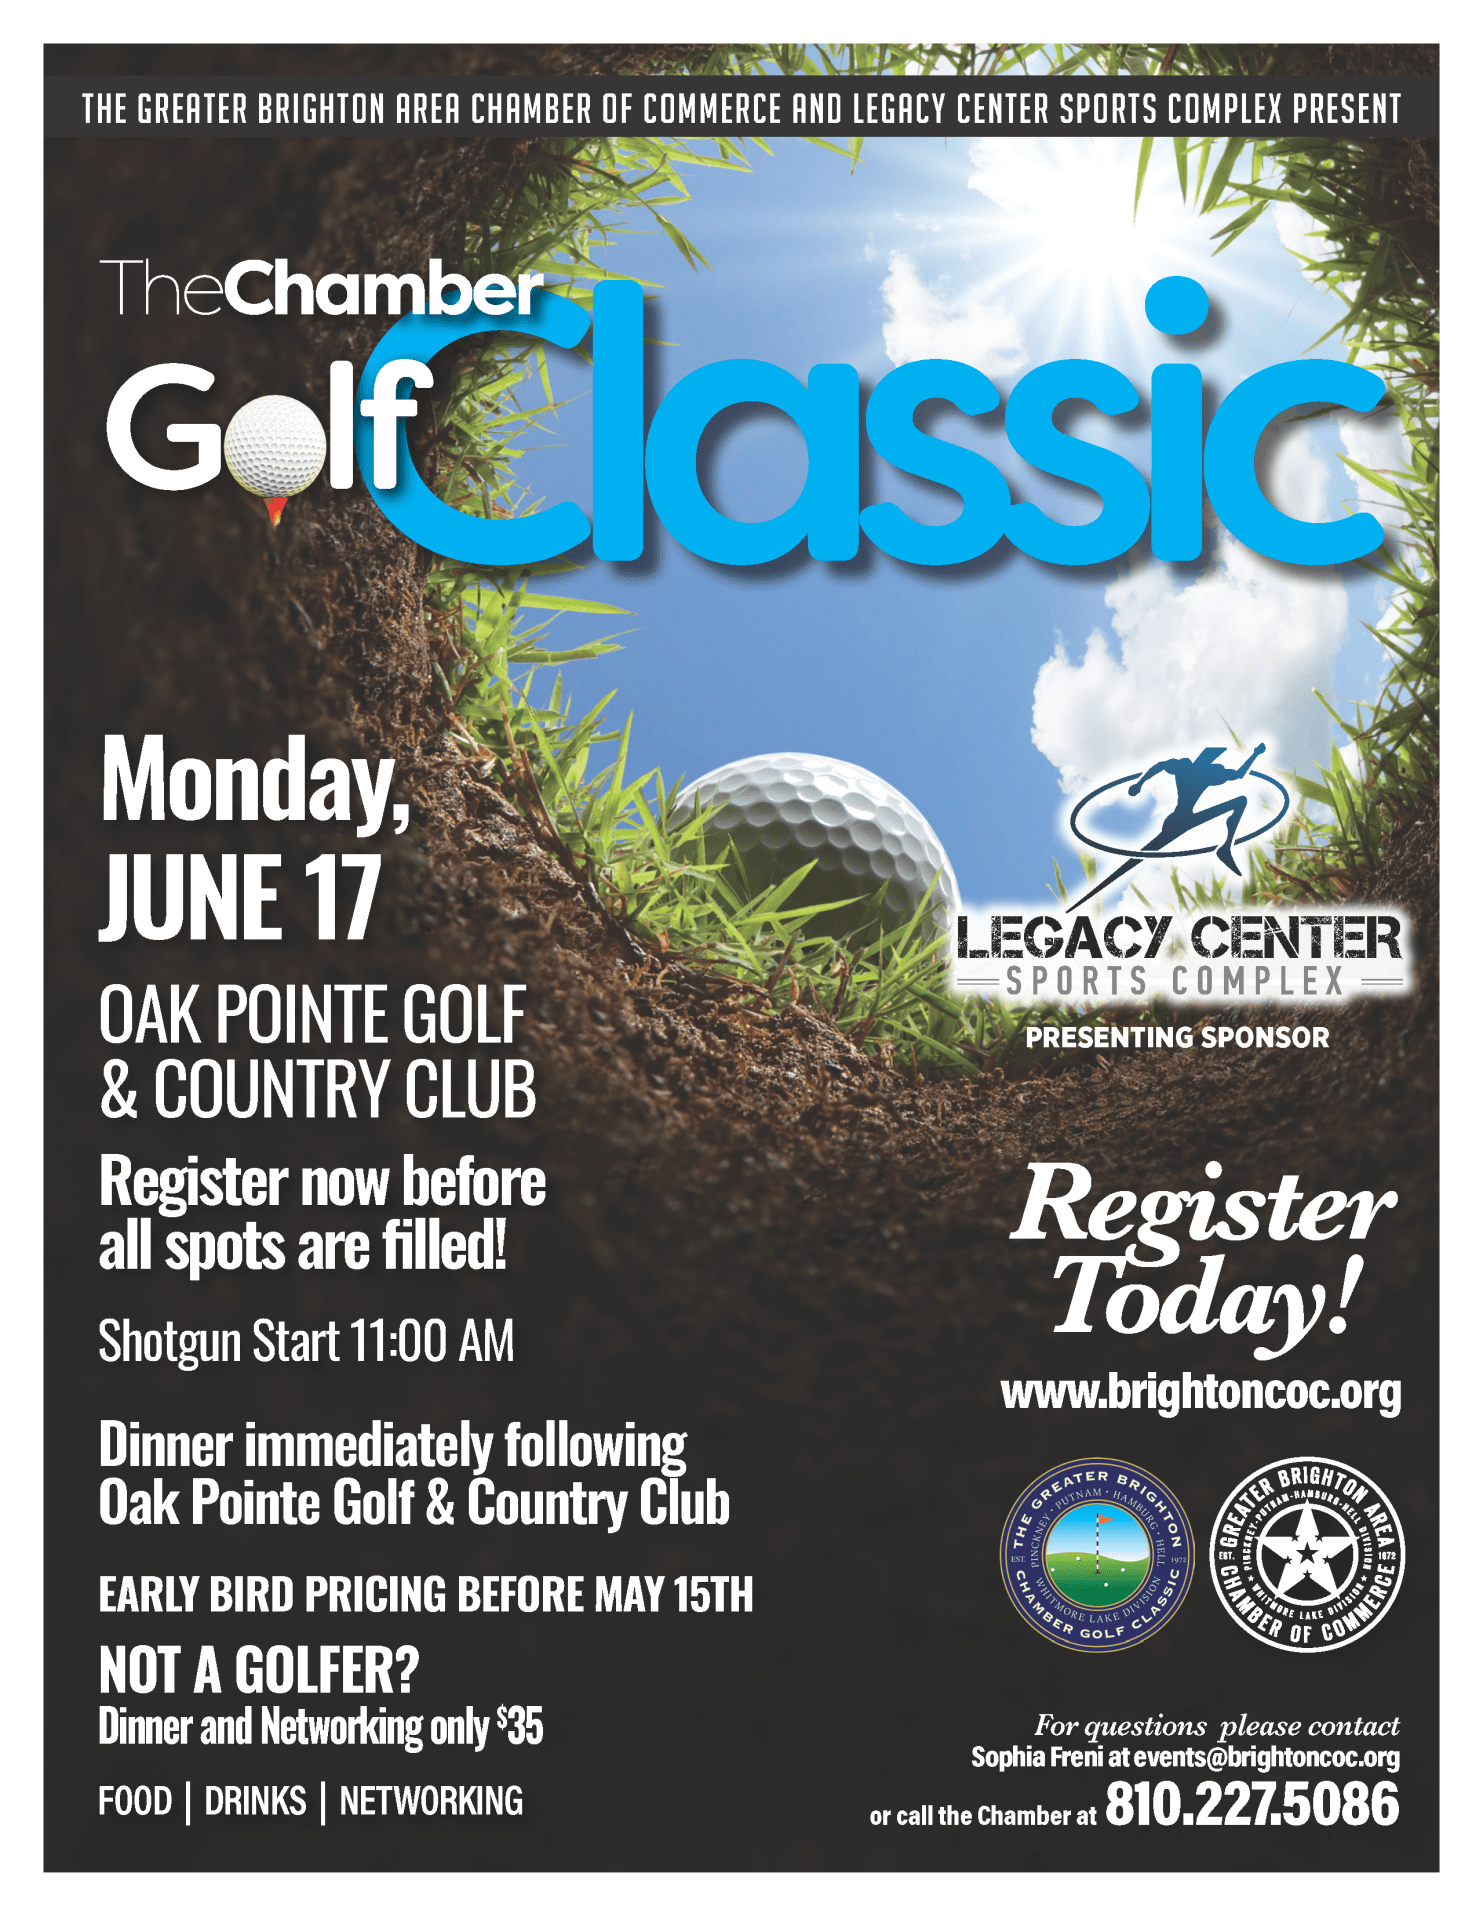 GOLF-CLASSIC_2019_flyer_3_19_01-8.5-X11_FINAL-w1483.png